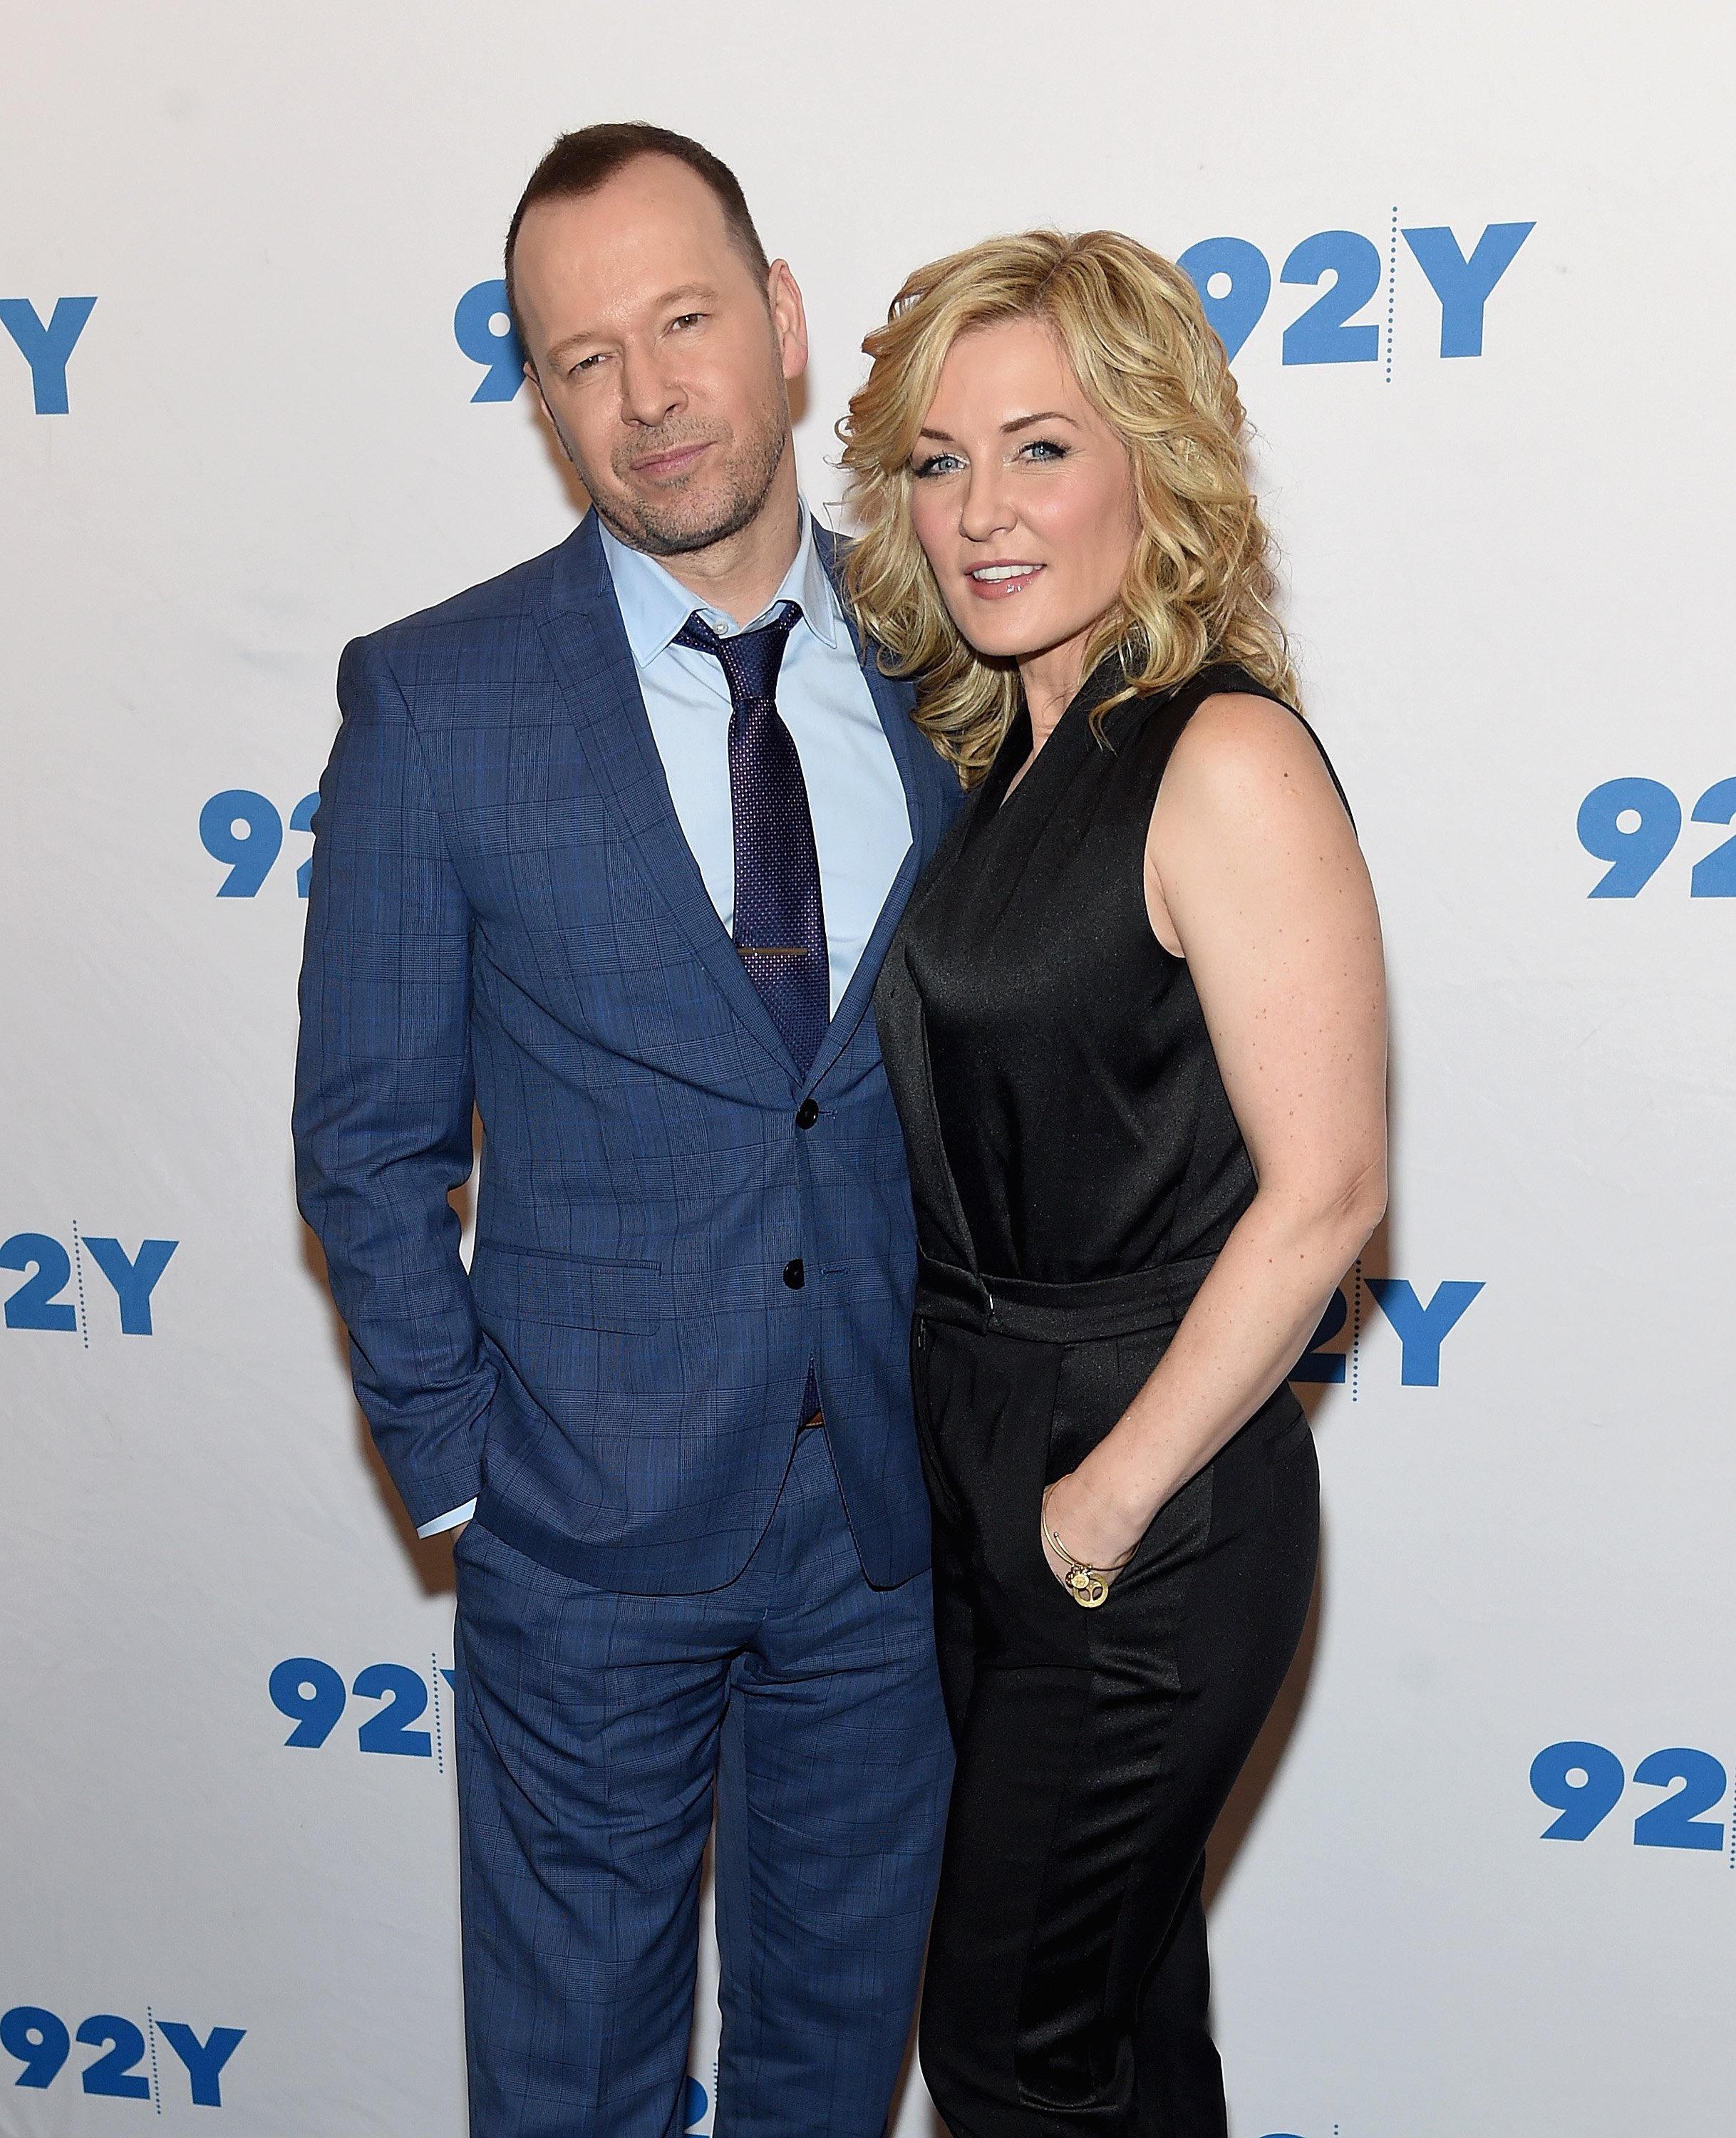 ": Donnie Wahlberg and Amy Carlson attend the ""Blue Bloods"" 150th Episode Celebration at 92Y on March 27, 2017 in New York City. 